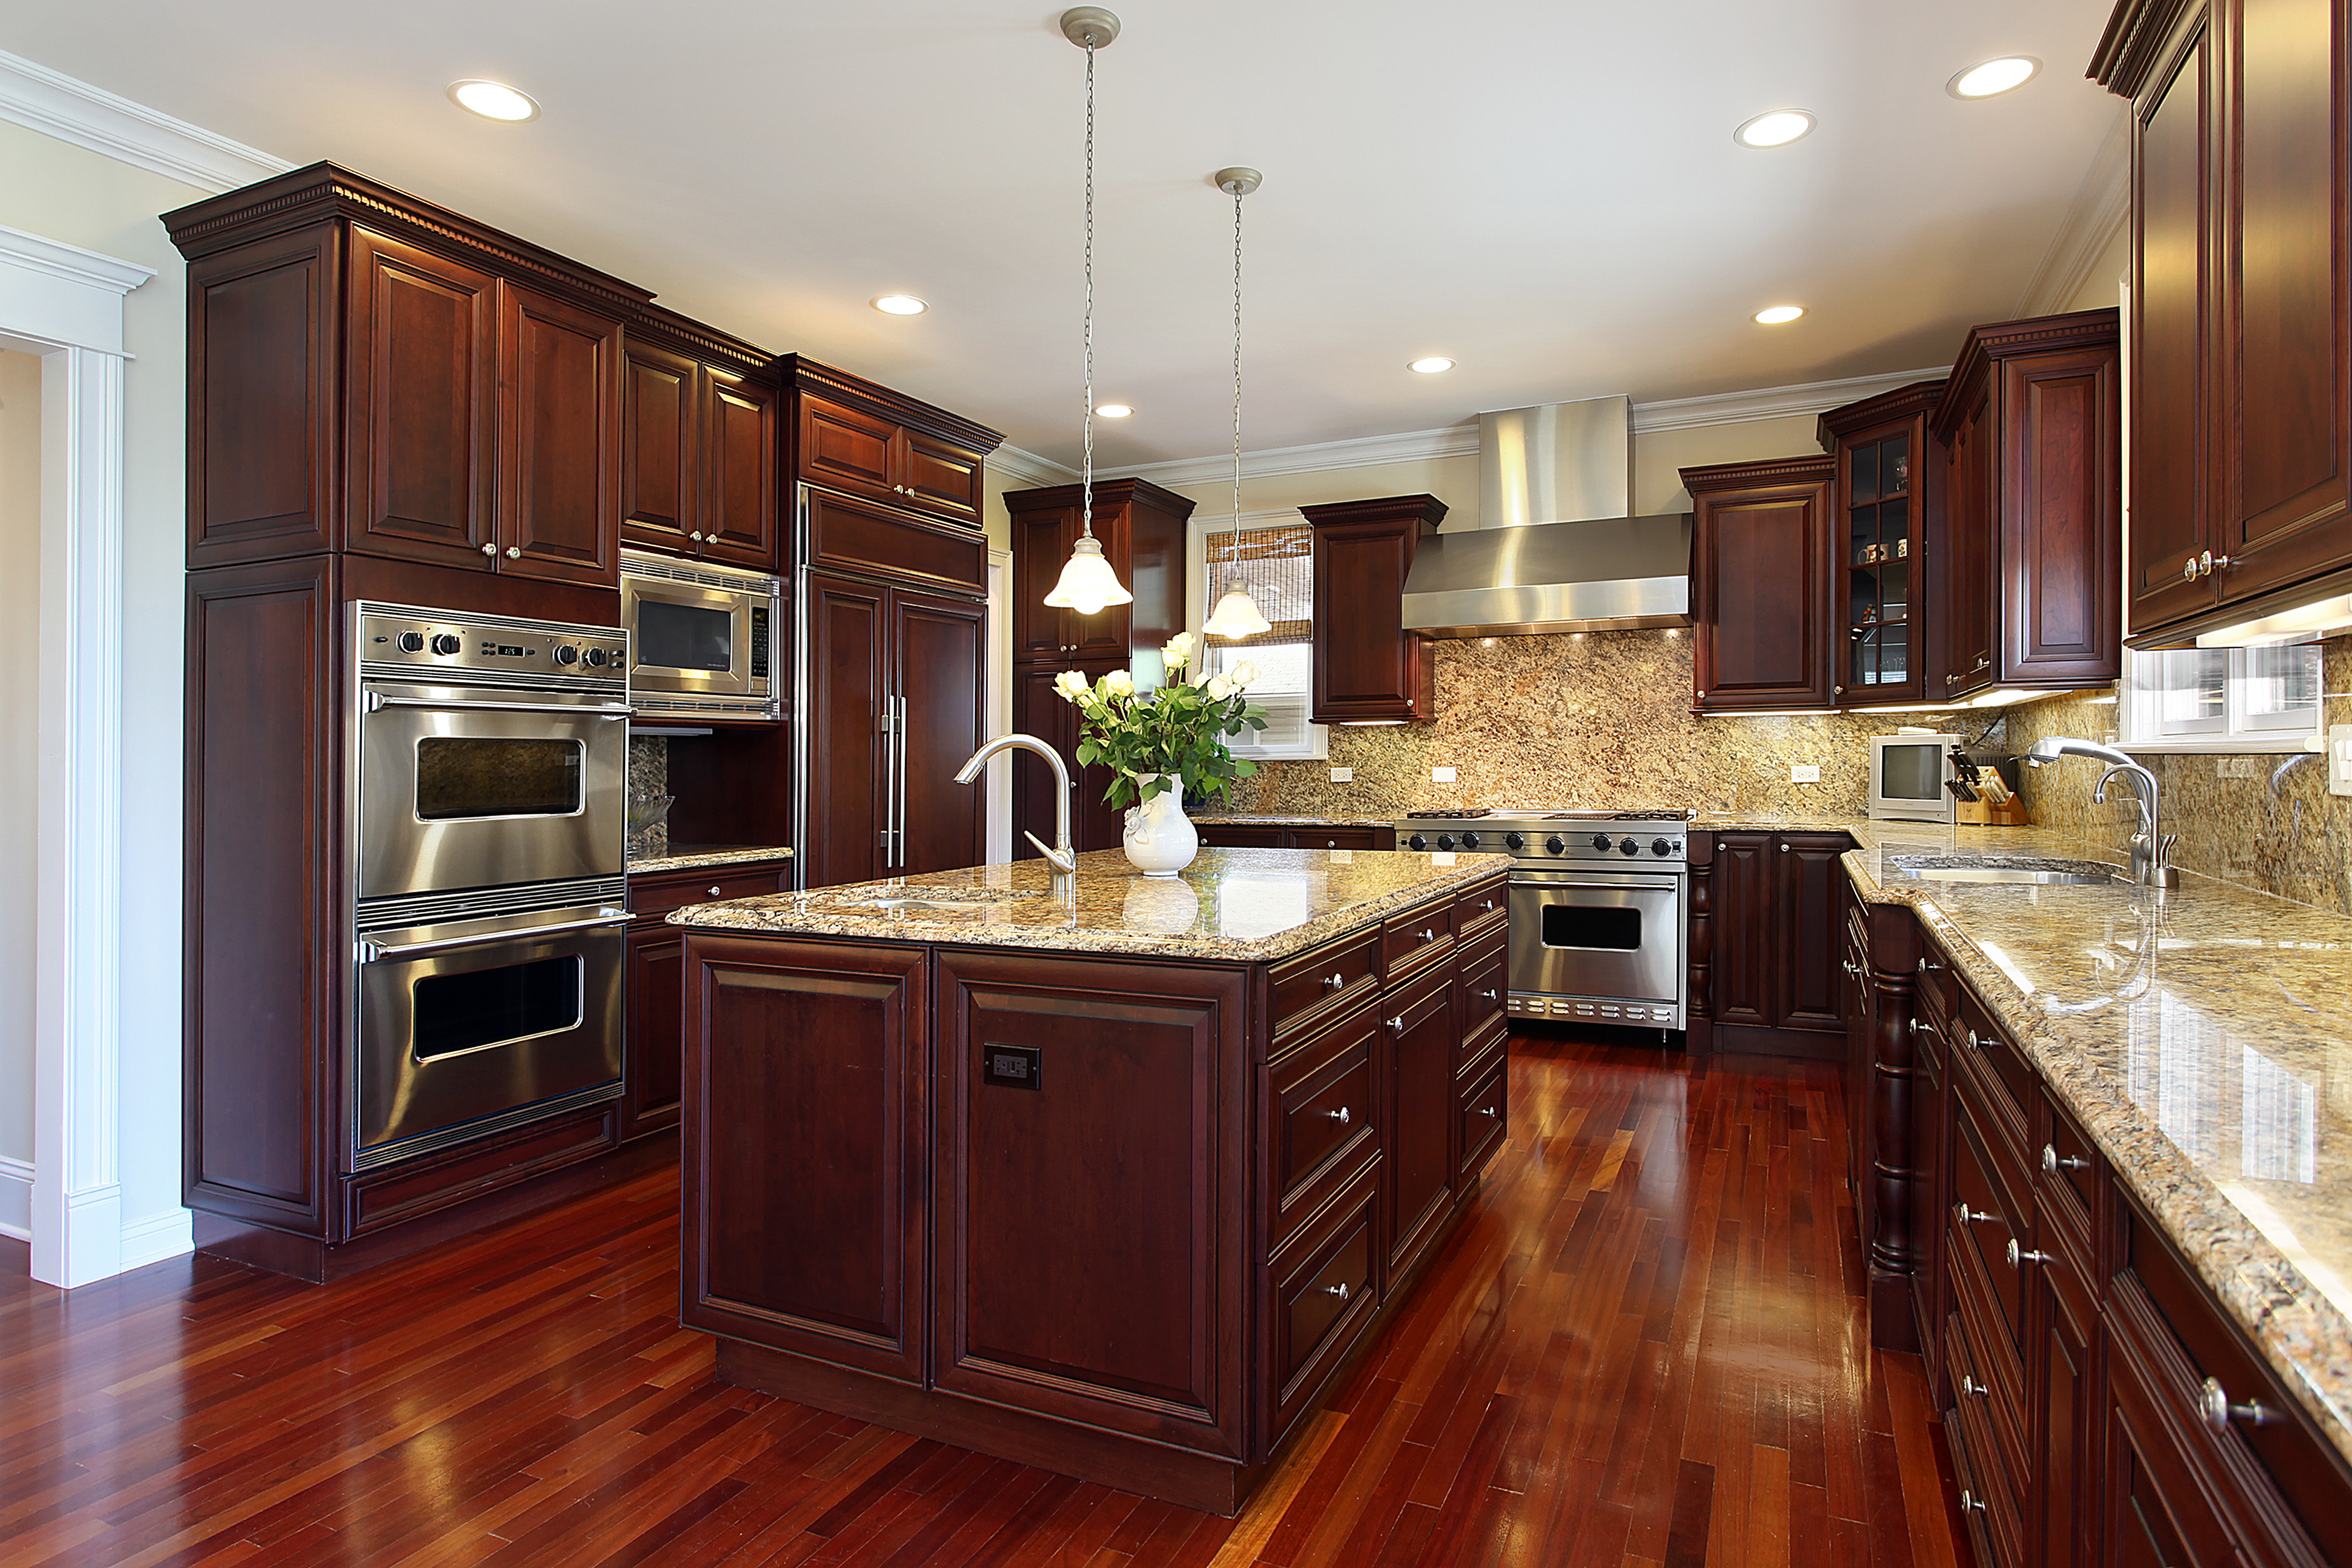 Kitchen - M&D Home Repairs and Remodeling LLC